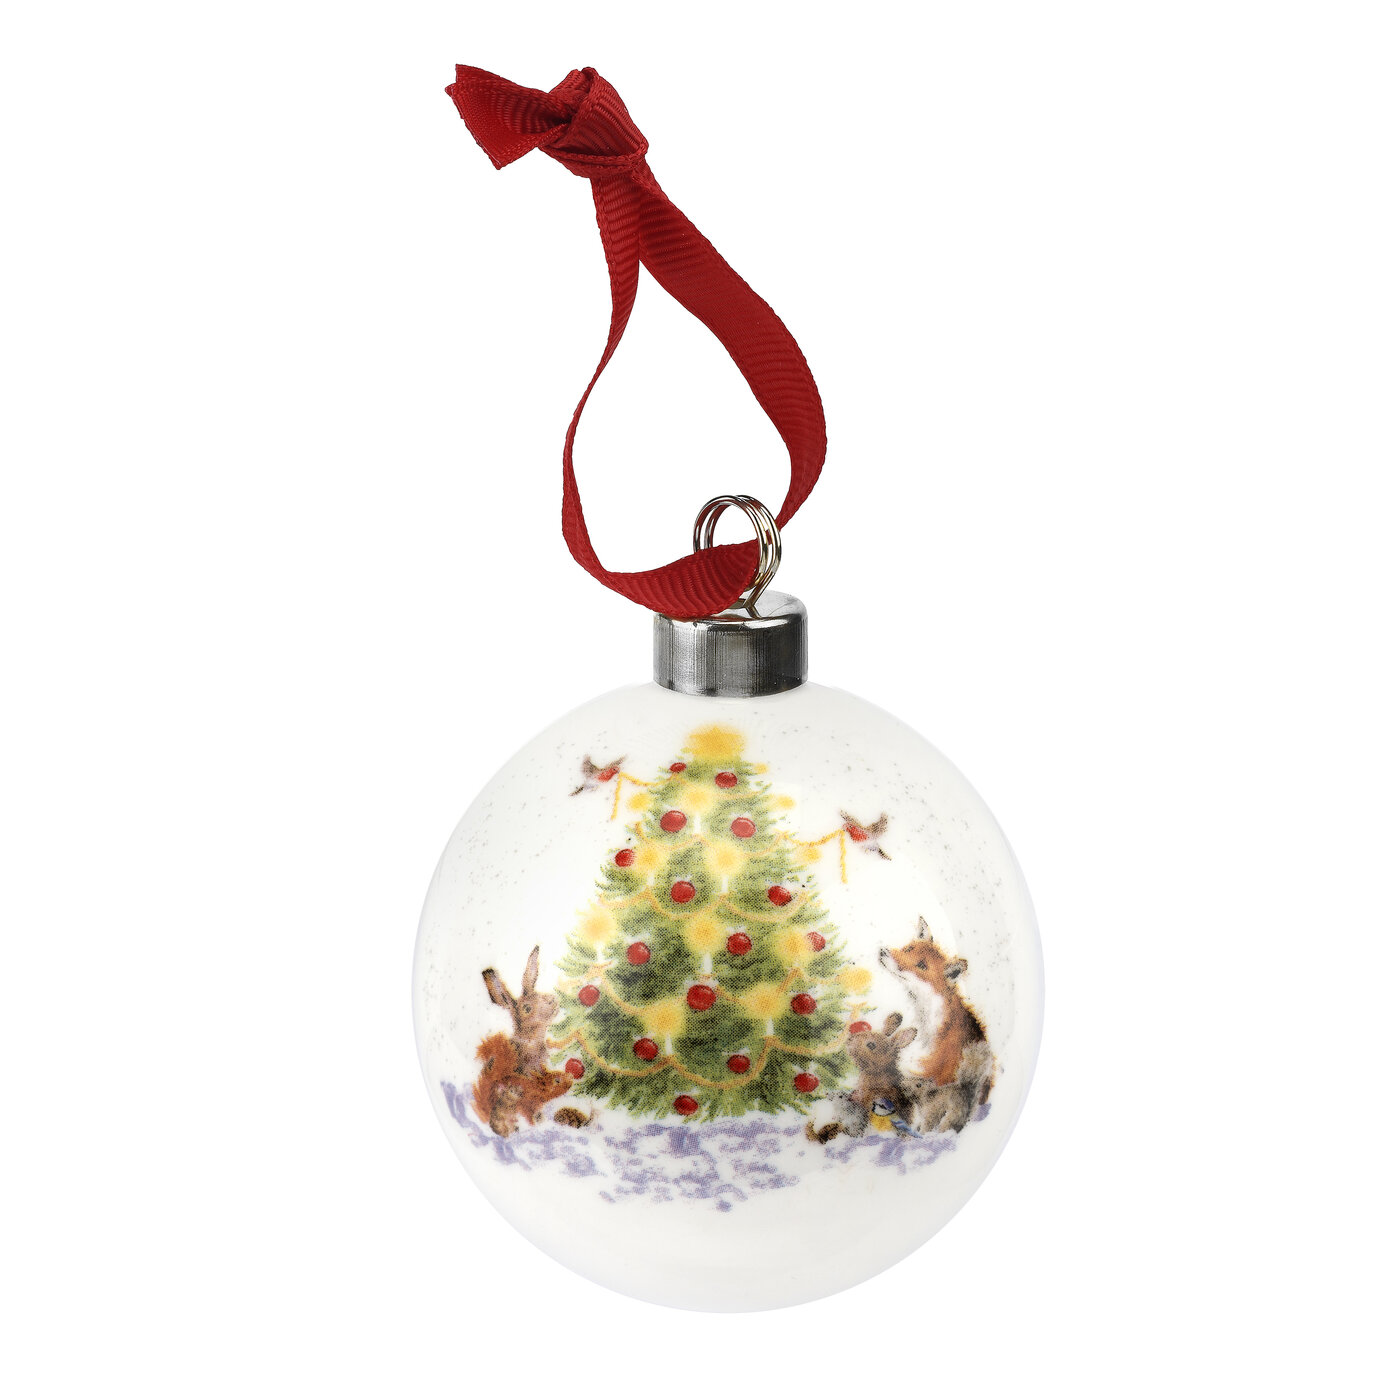 Wrendale Designs Bauble Oh Christmas Tree (Assorted) image number 0